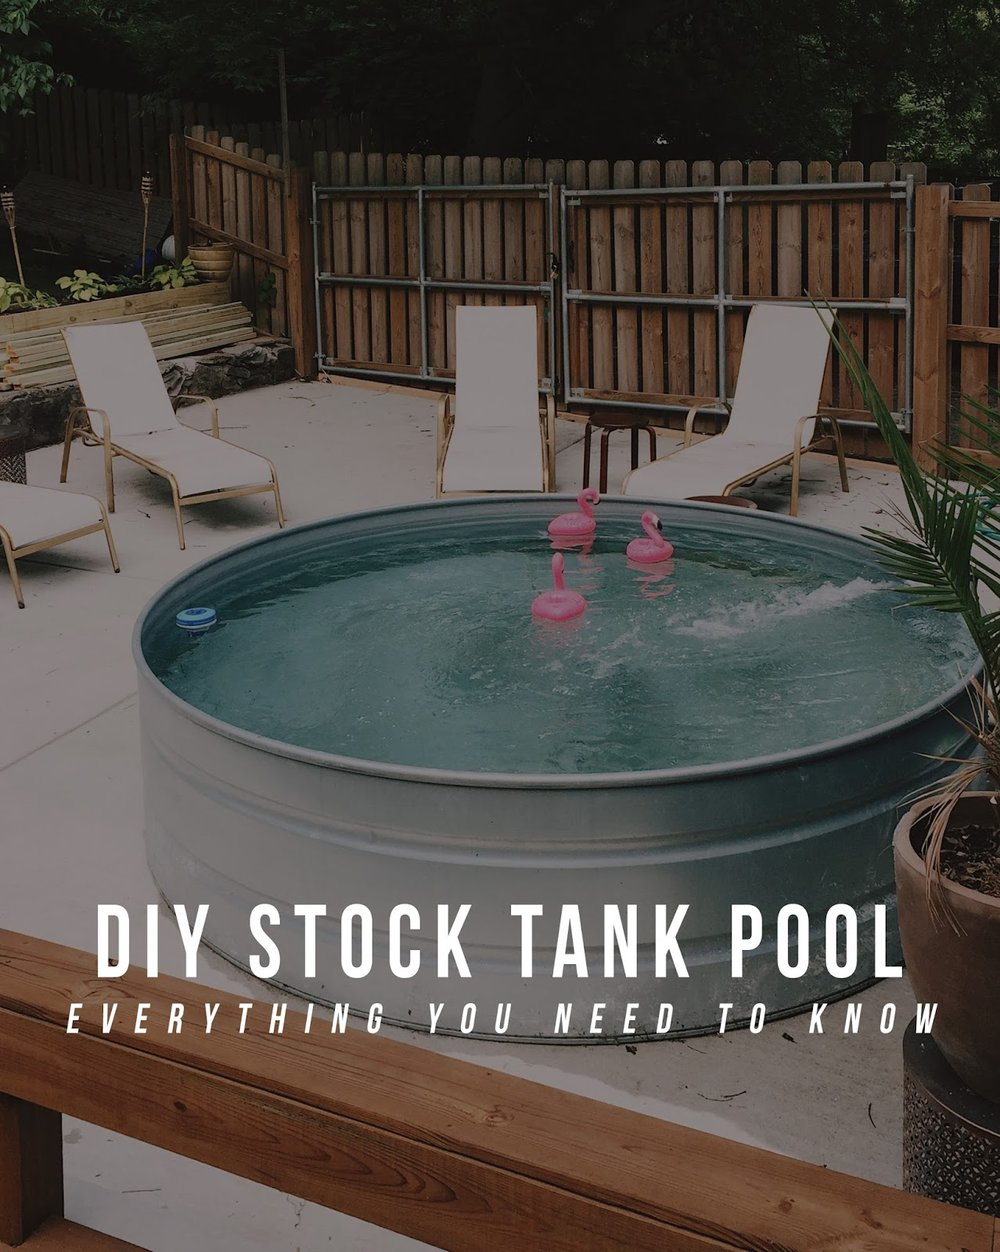 Stock Tank Pool Title Photo.jpg